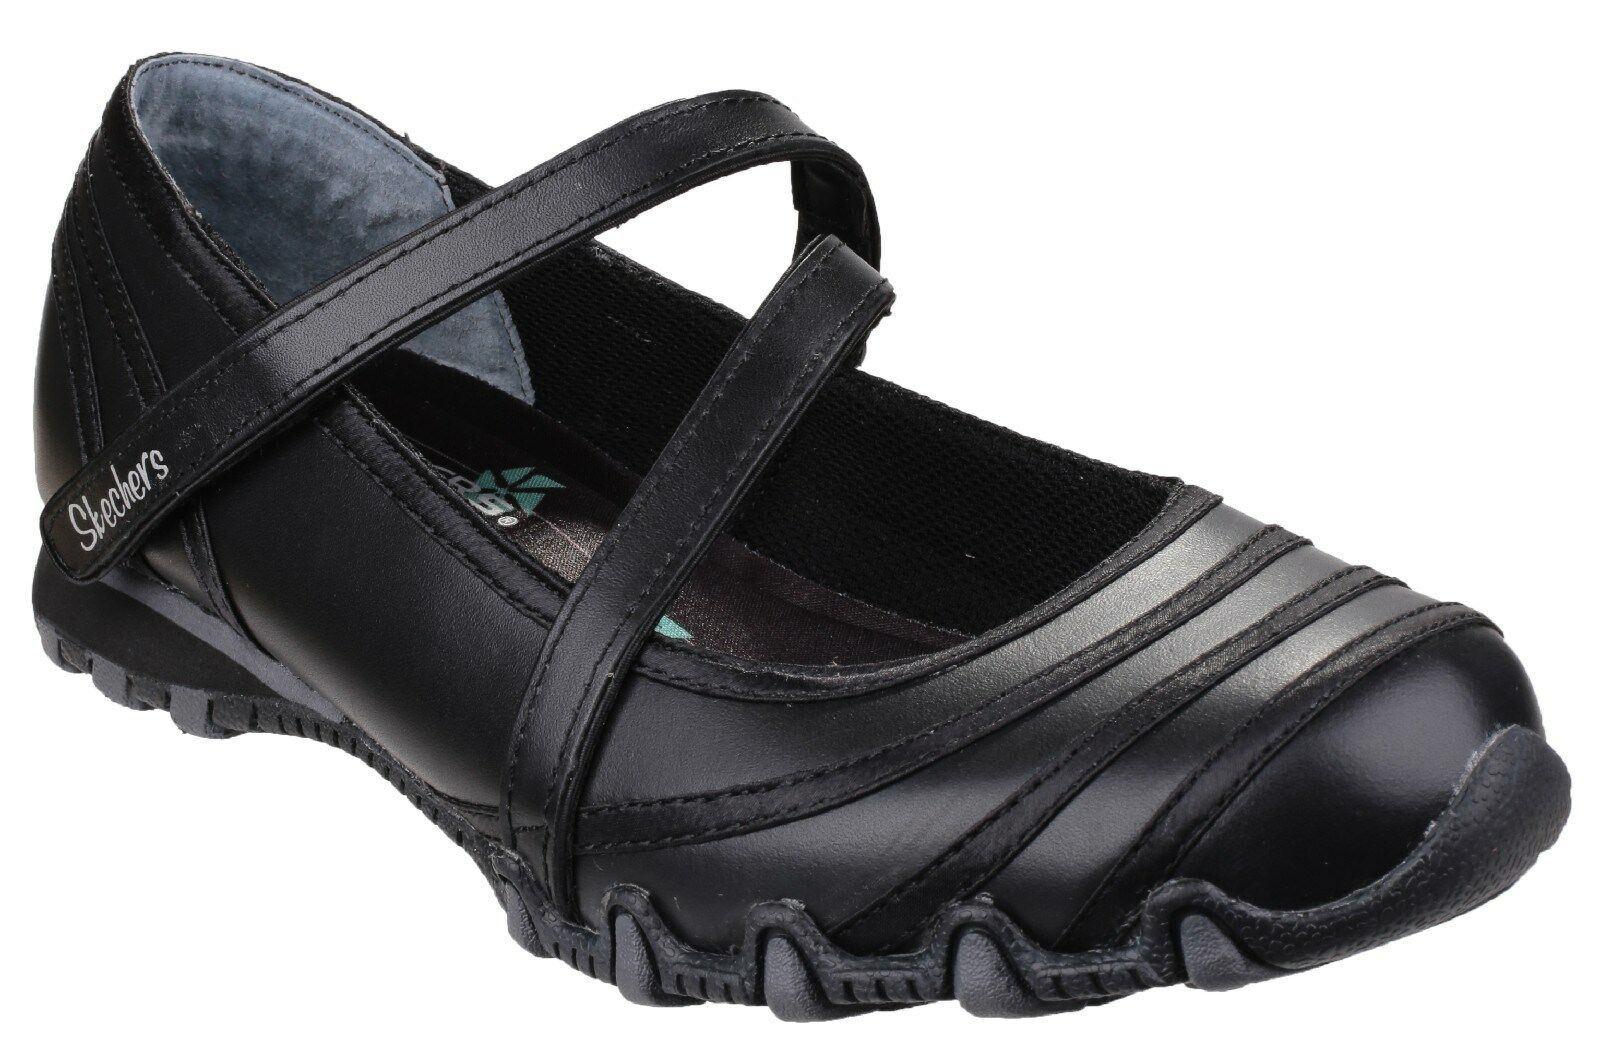 Skechers Bikers Satin Shine Chaussures Mary Jane Femme Chaussures Shine Noires UK3-8 5a25a2